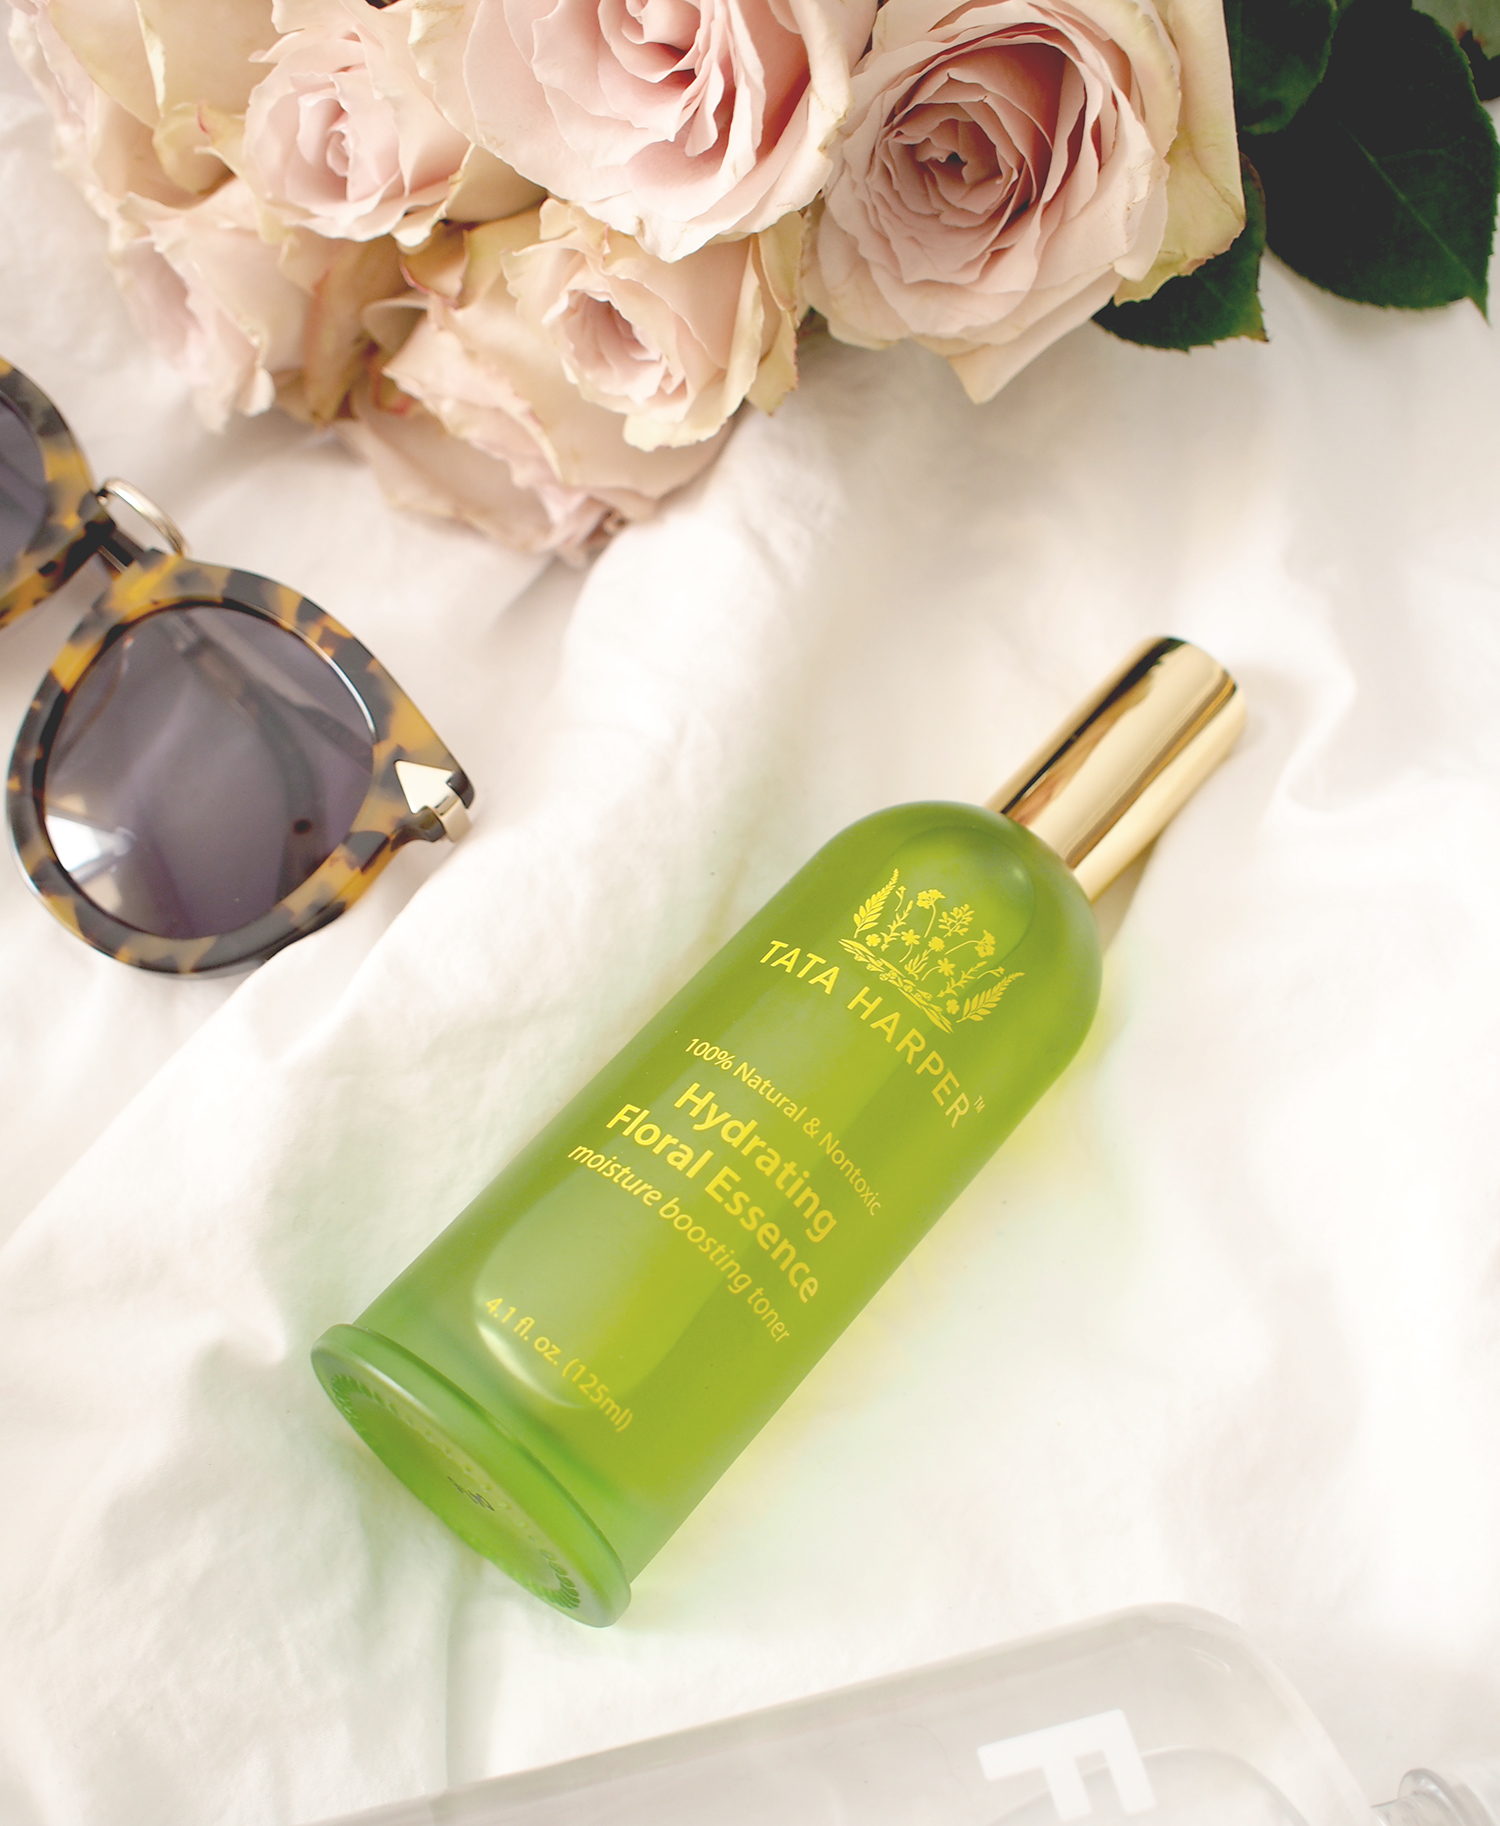 Tata Harper toner, perfect for hot + dry climates (hello palm springs vacays in the summer!) | A Fabulous Fete